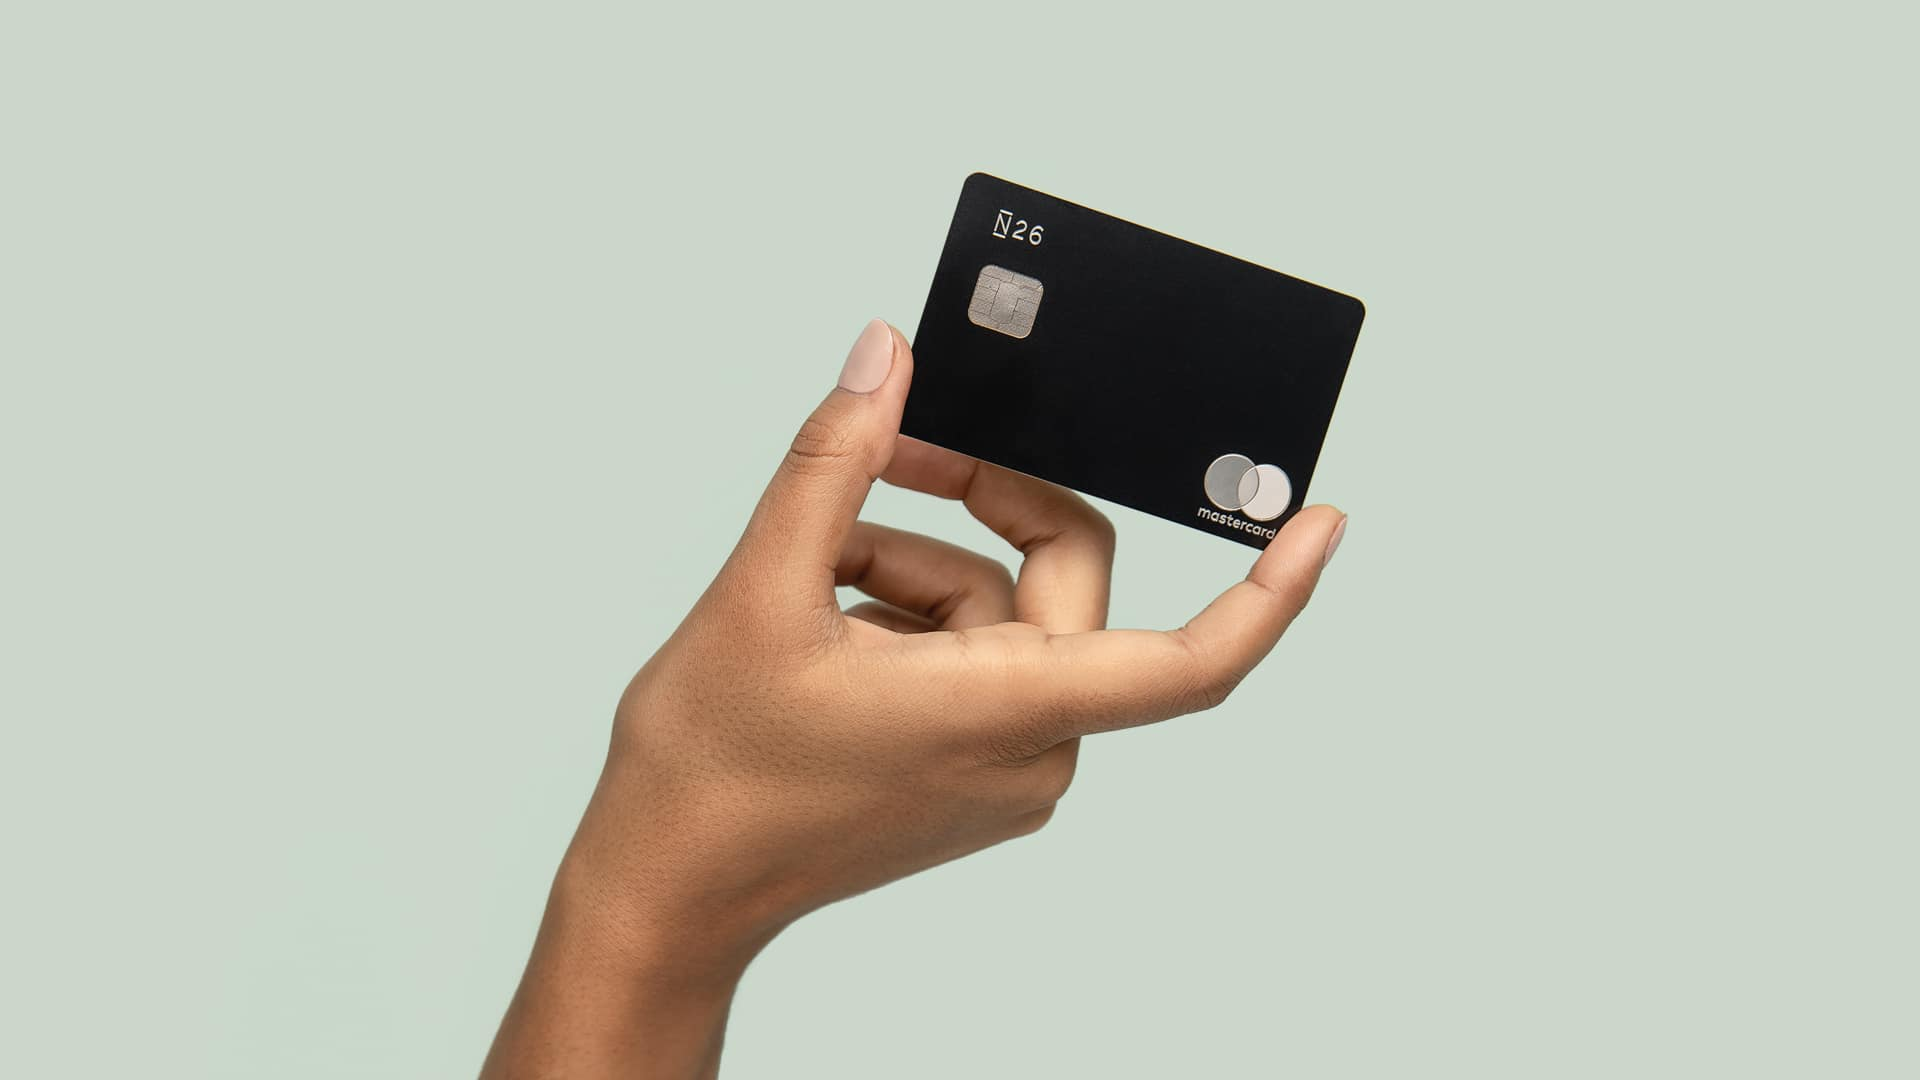 N26: Italians saved 1700€ during summer 2020